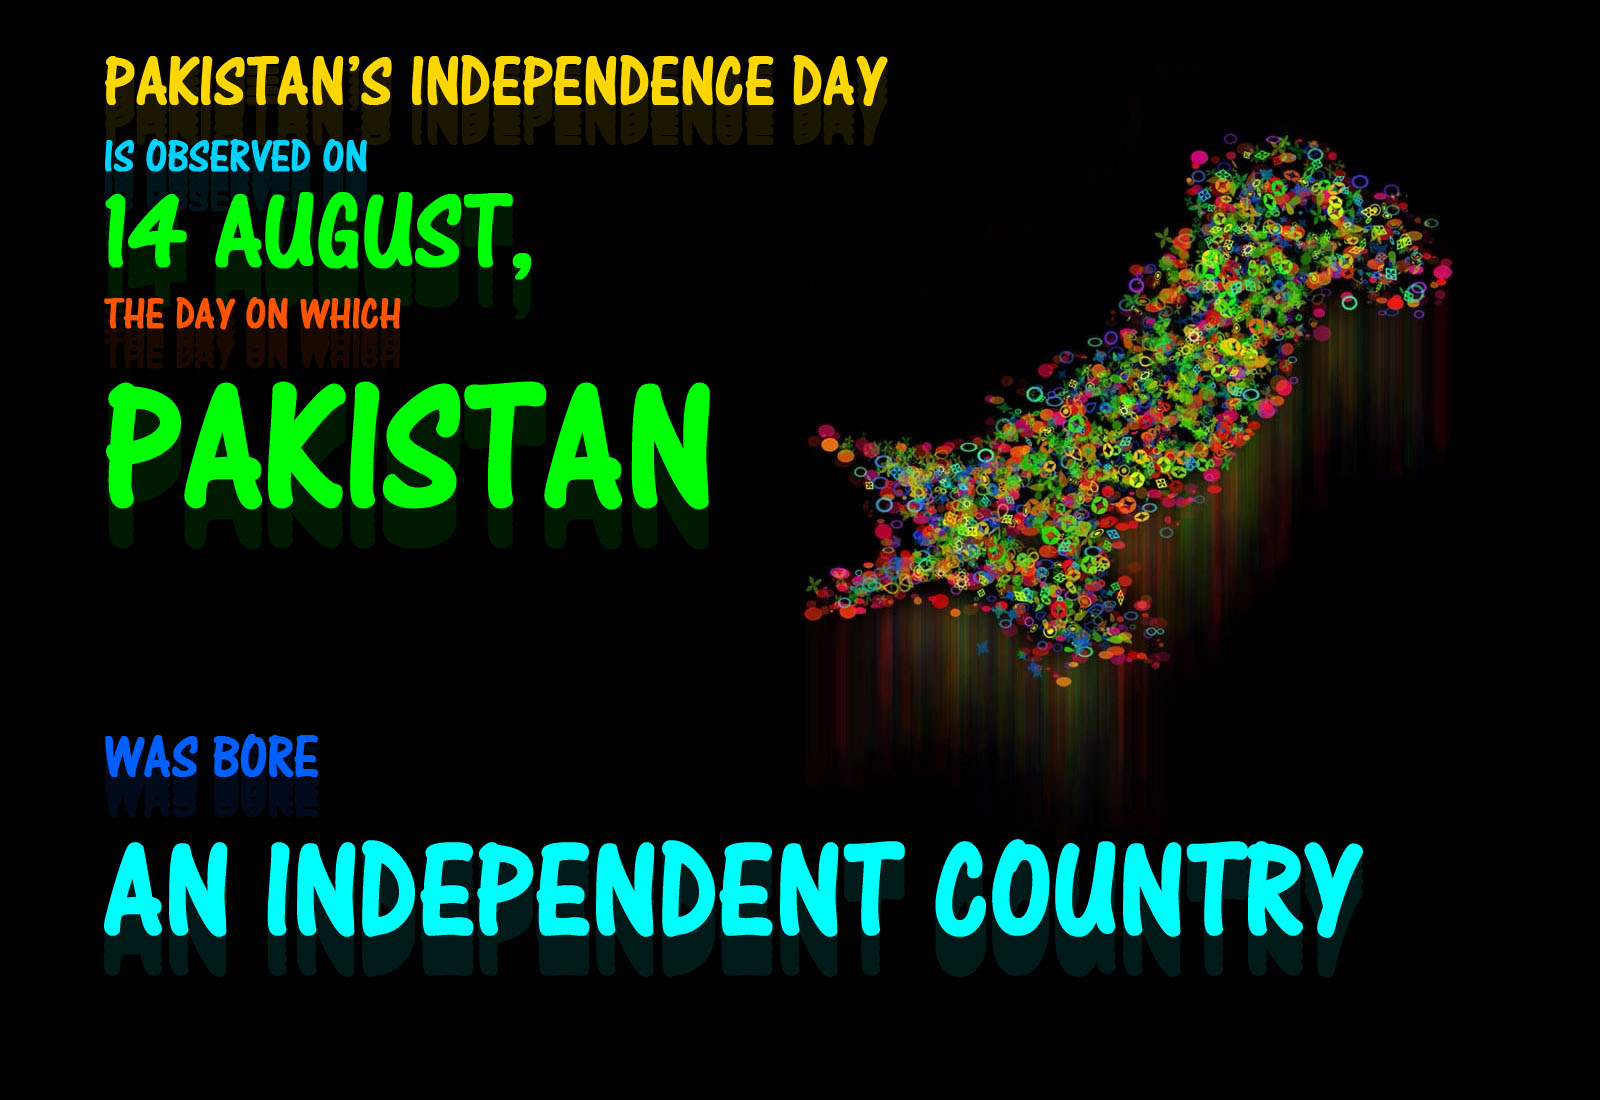 26 Beautiful Pakistan Independence Day Wallpapers 2012 14 August 1600x1100